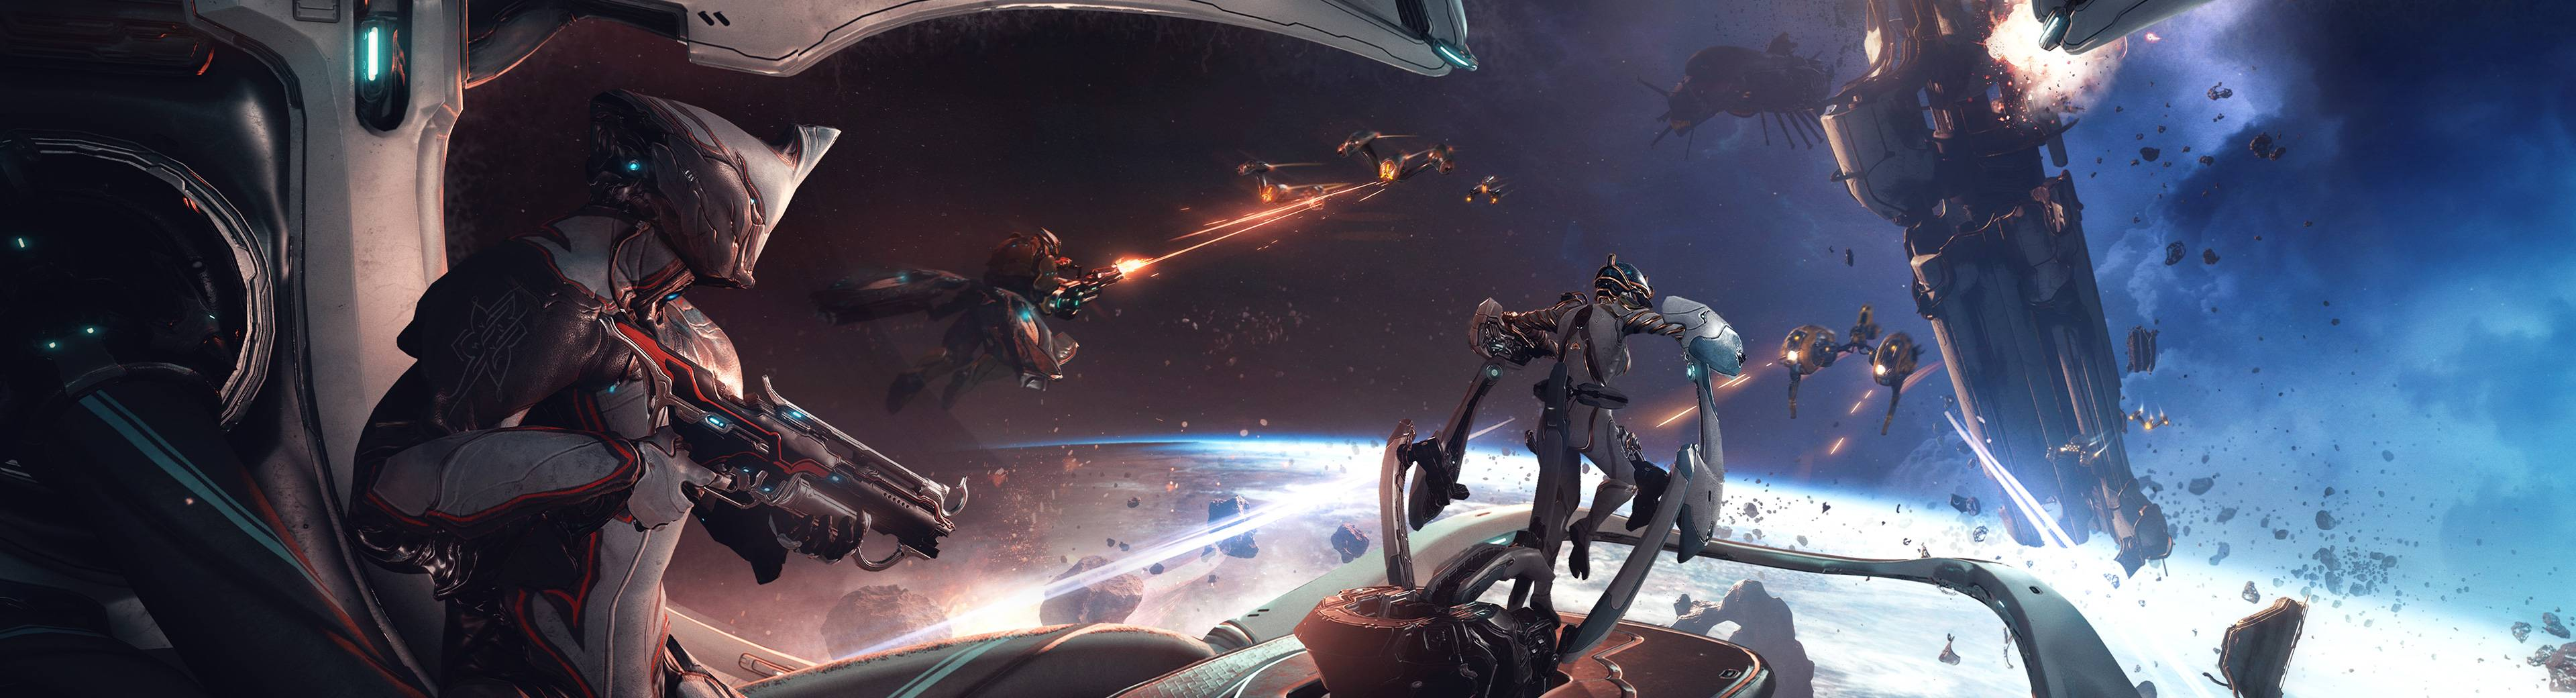 Empyrean Update 27 Pc Update Notes Warframe Forums Introduce yourself here suggest a forum category warframe forums